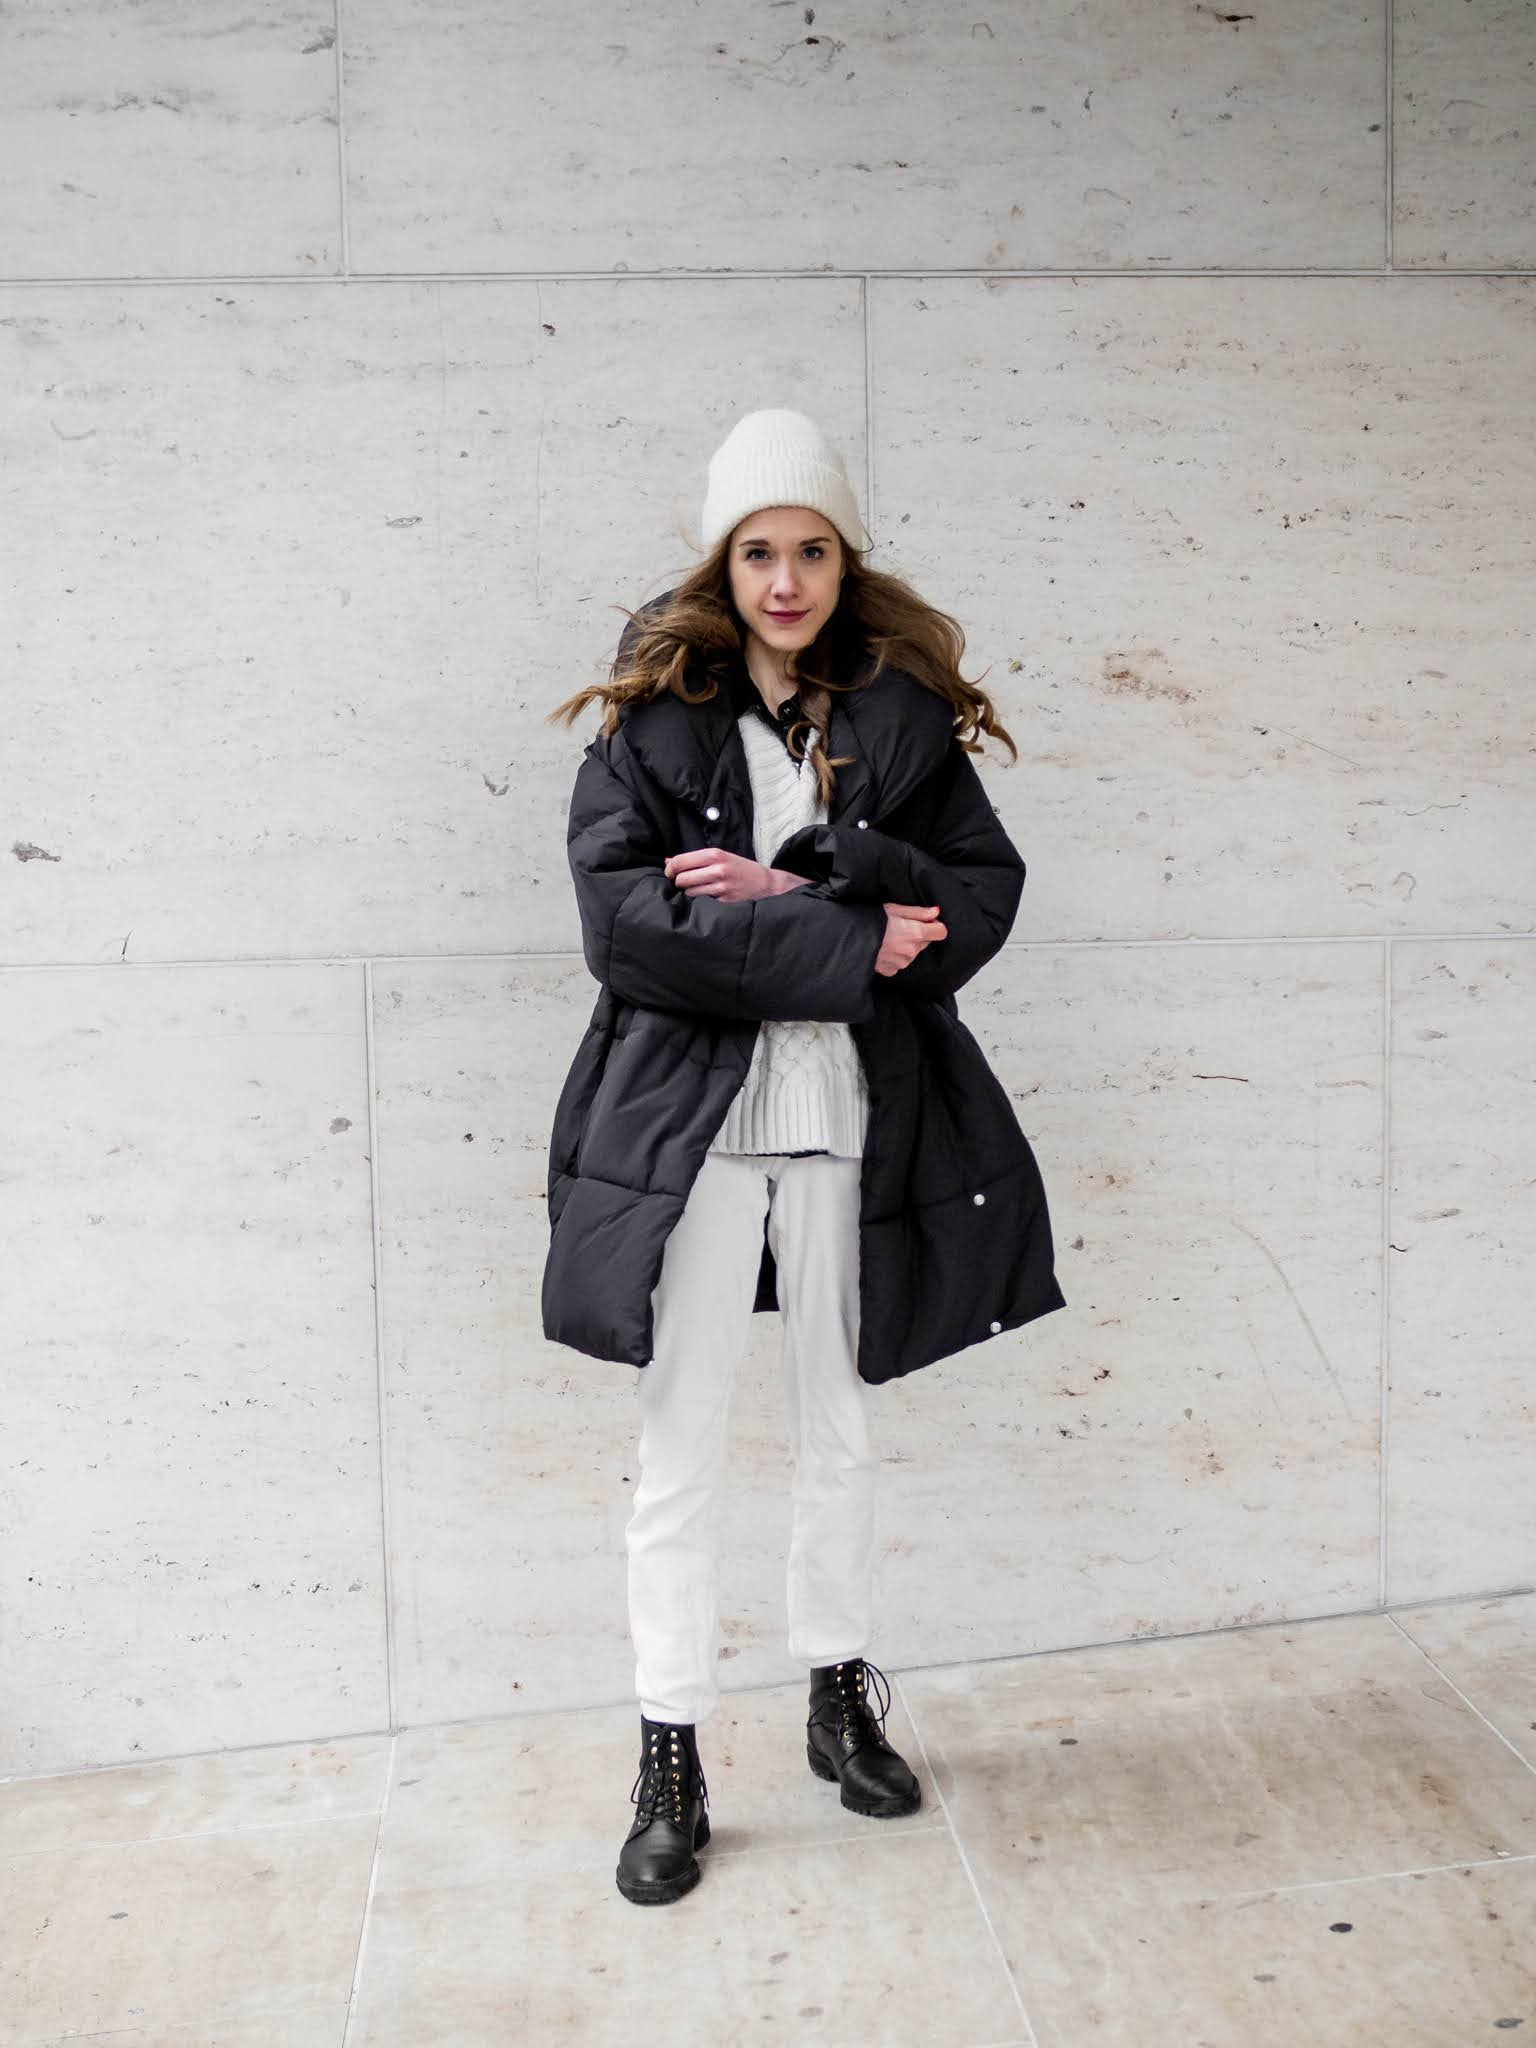 Mustavalkoinen asu talveen // Black and white winter outfit